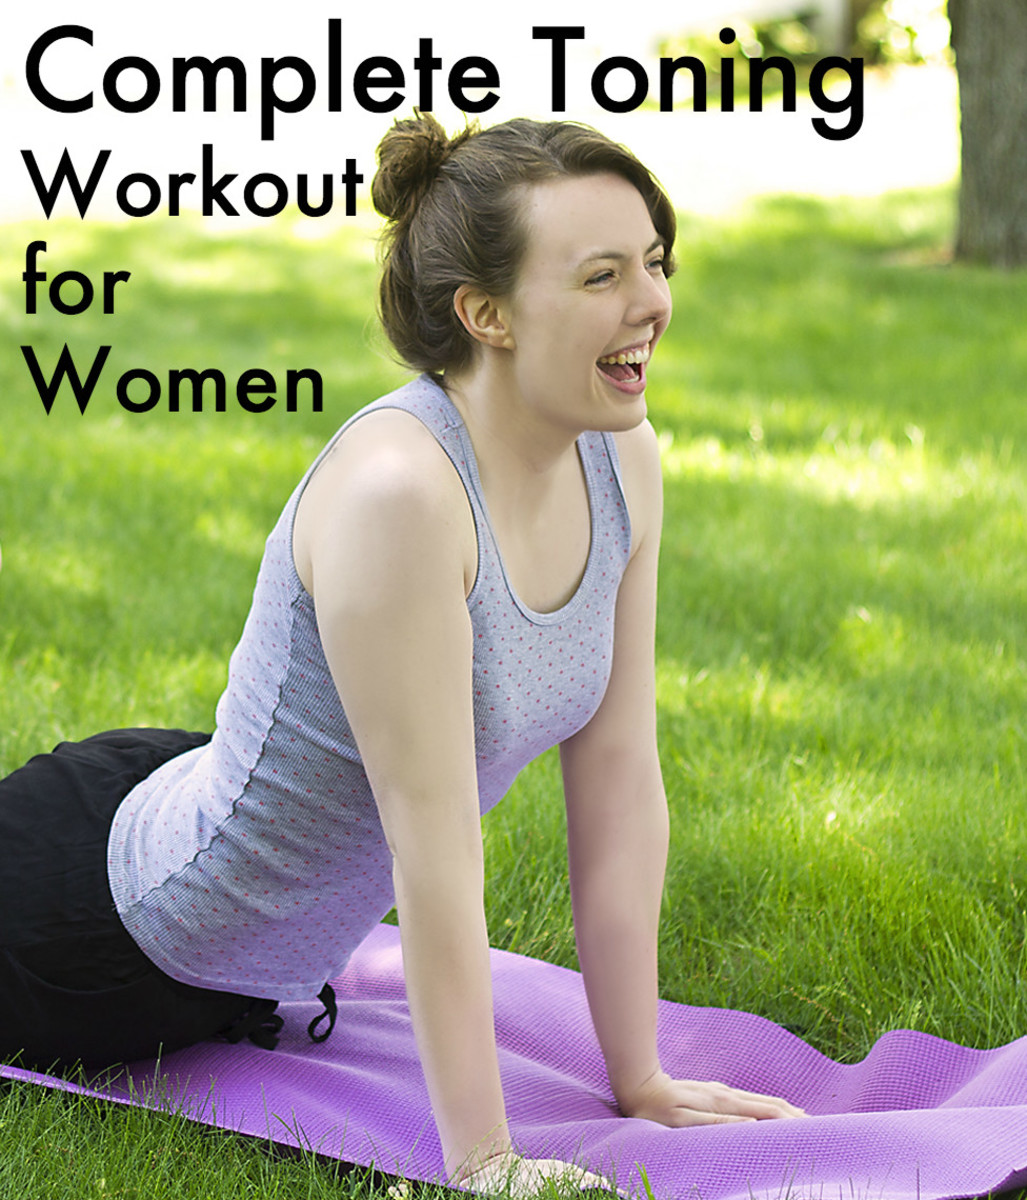 d96ff2bc83b70 Toning Exercises for Women: Complete Workout Plan for Beginners | CalorieBee